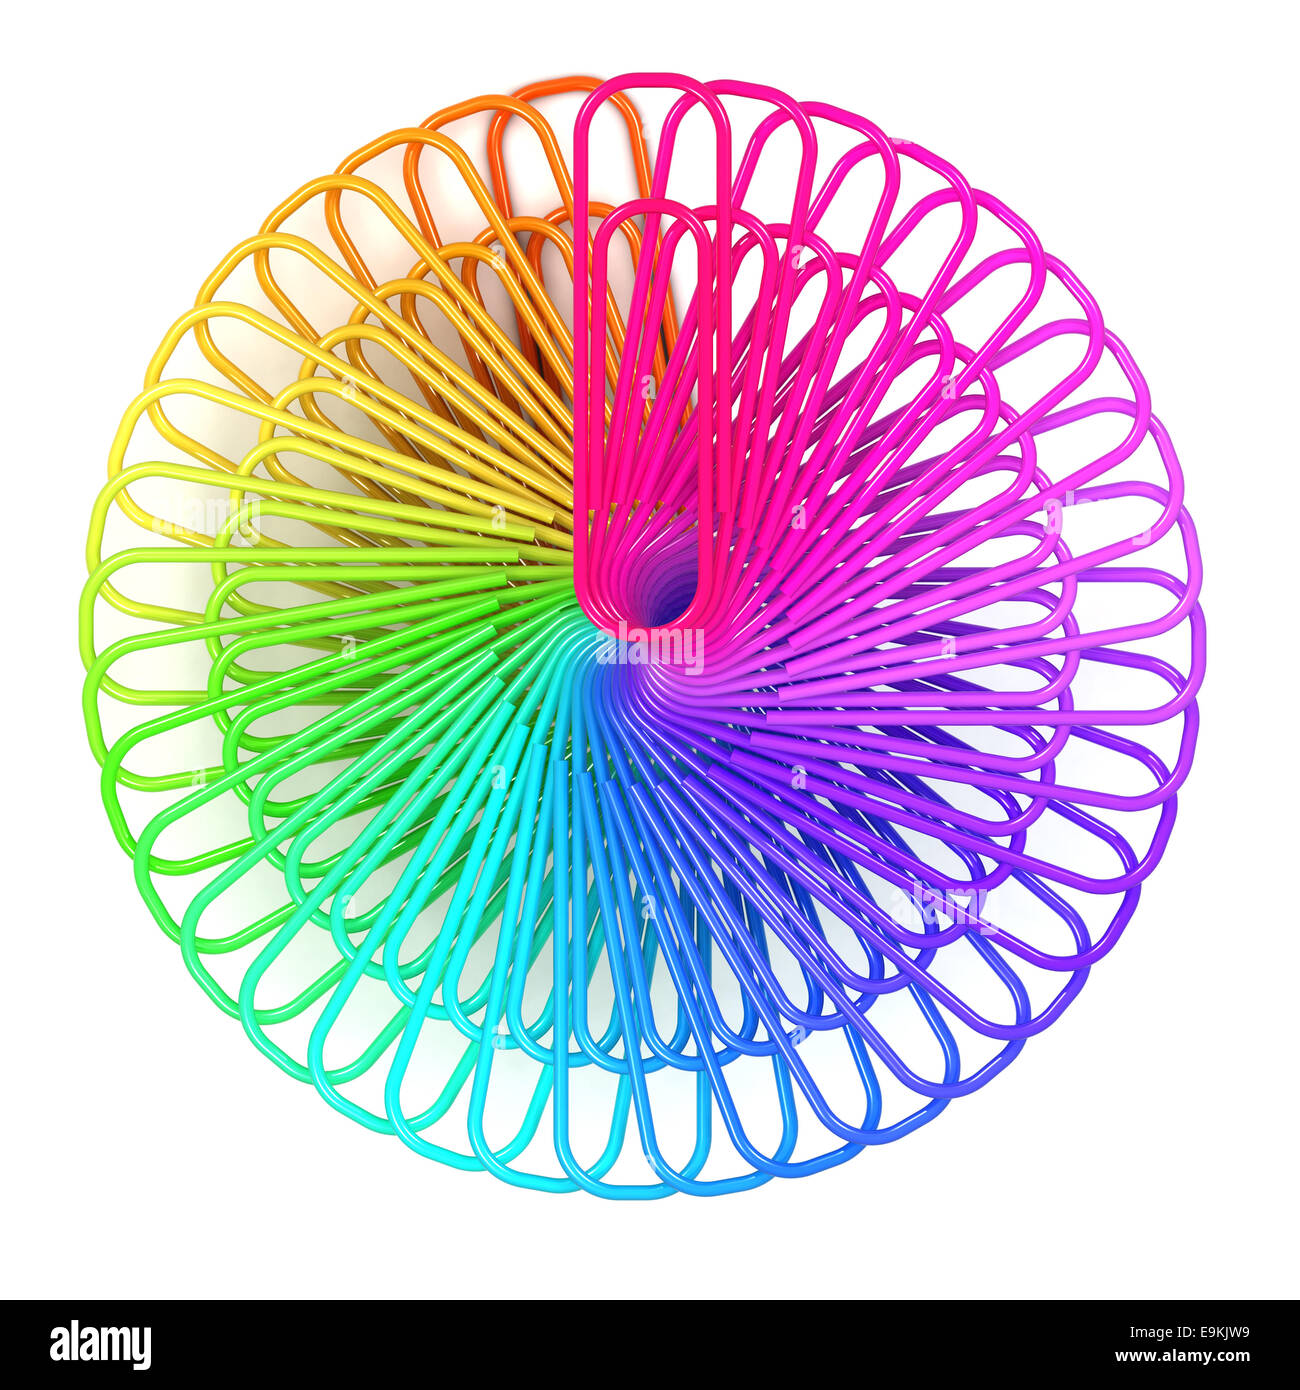 3d render of a radial arrangement of paperclips in a coloured spectrum - Stock Image